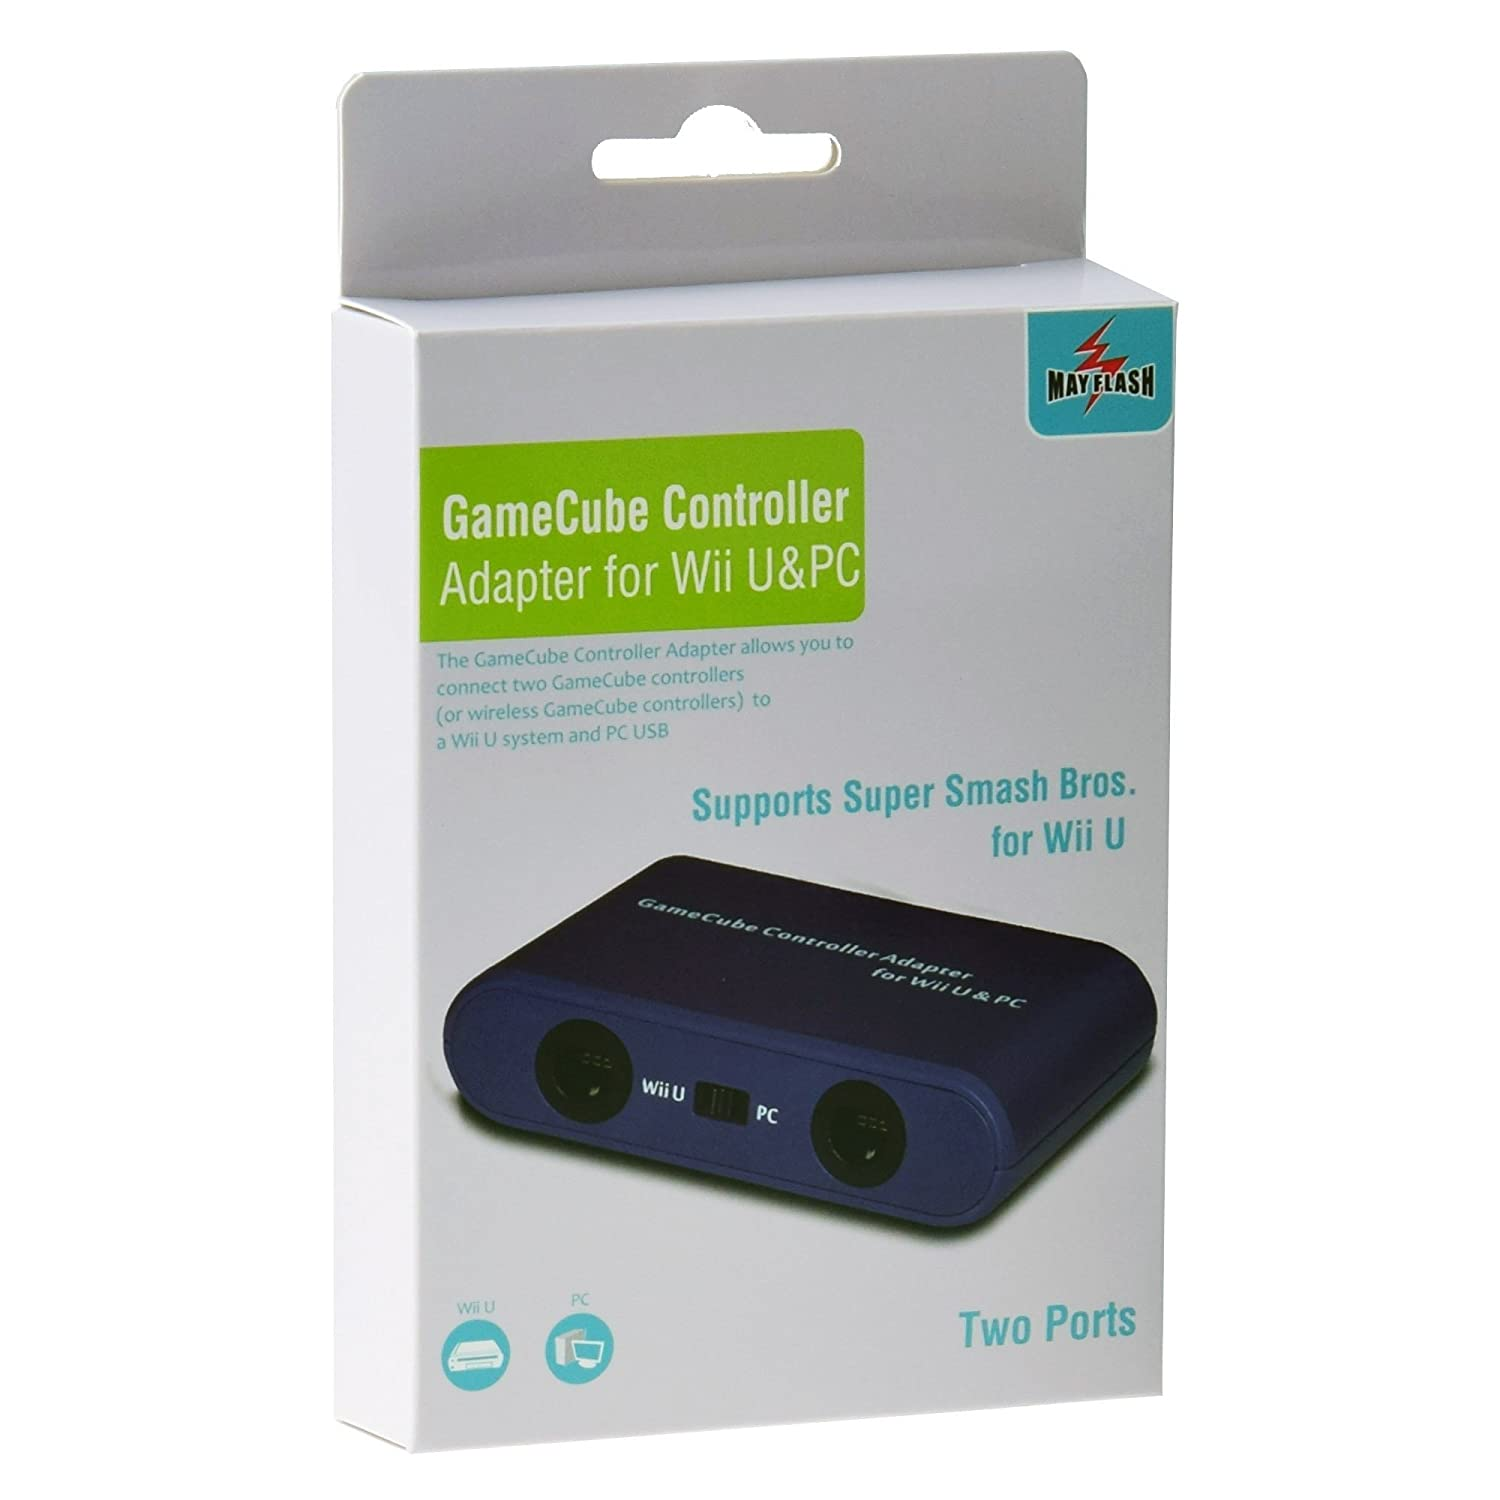 GameCube Controller Adapter for Wii U & PC: Amazon.co.uk: Electronics